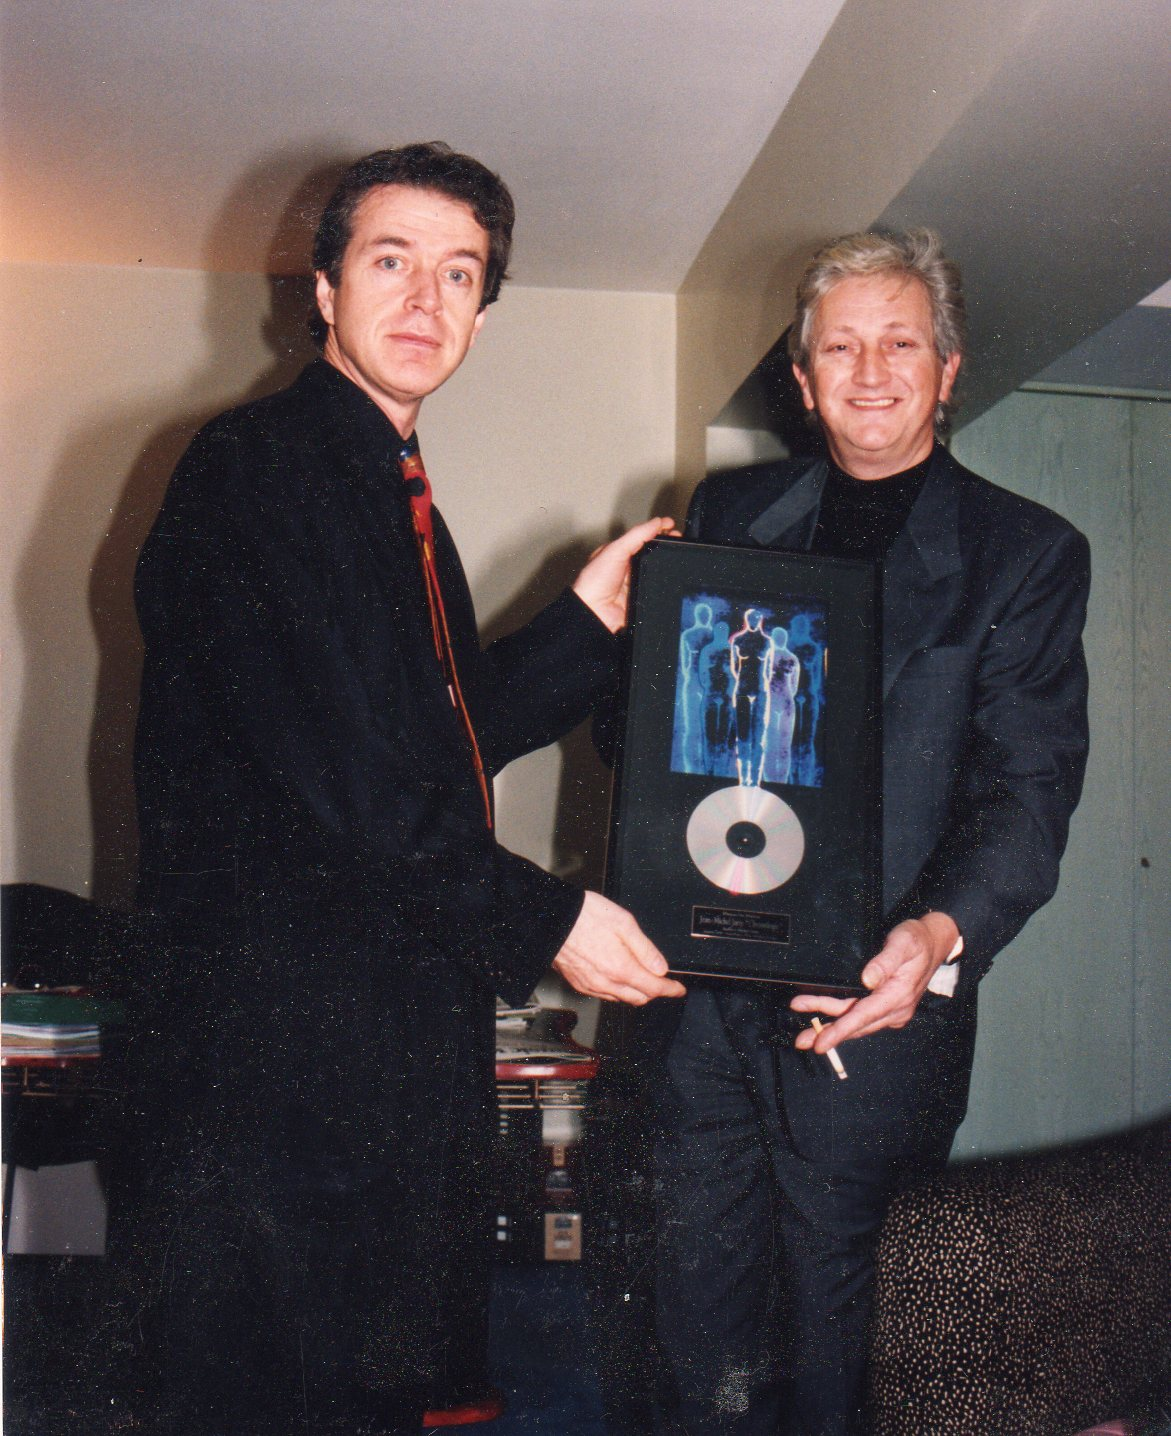 With Francis Dreyfus when I received my Platinum Record of Chronologie